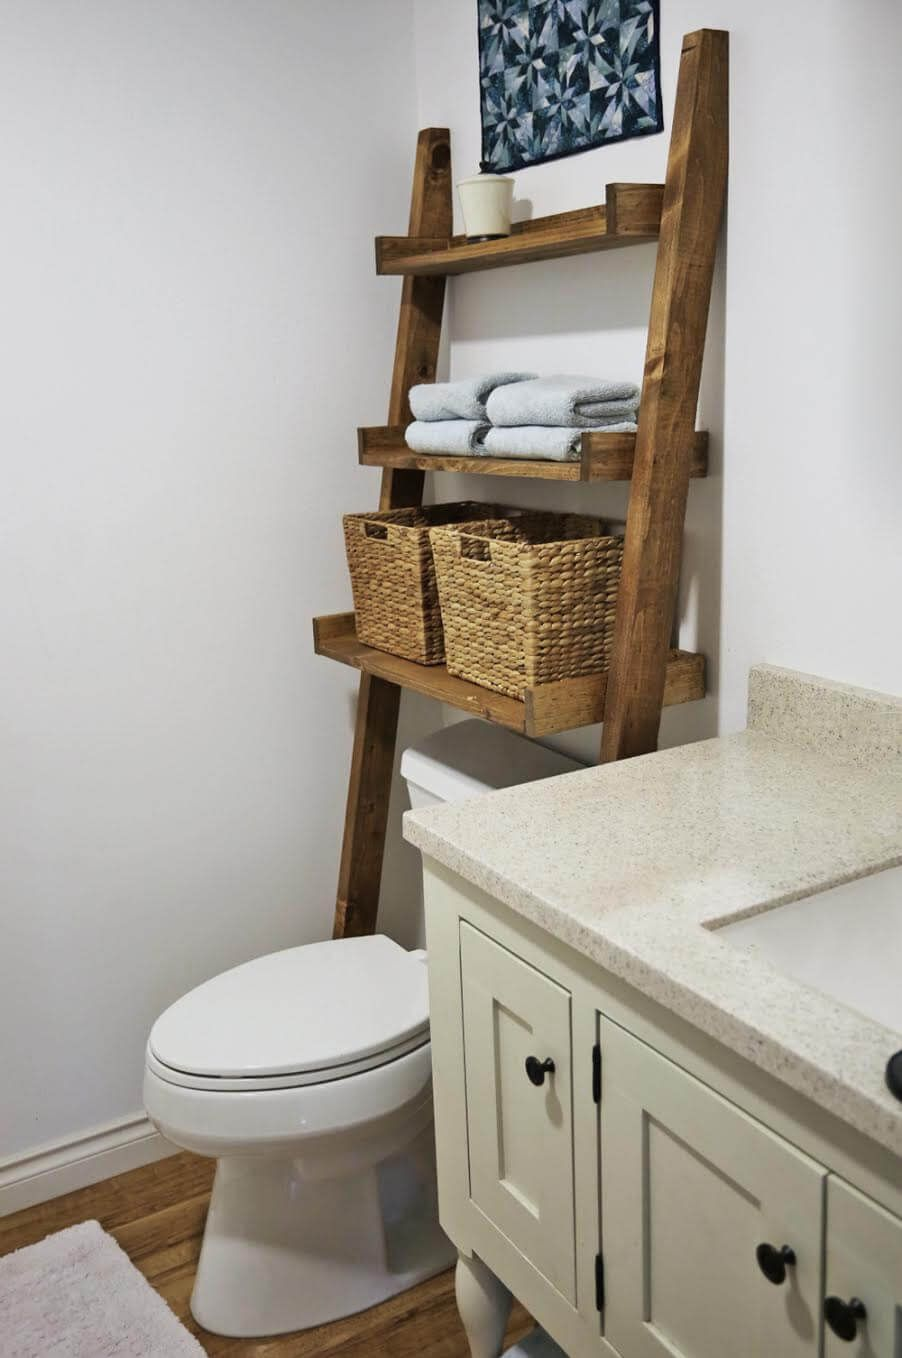 32 Brilliant Over The Toilet Storage Ideas That Make The Most Of